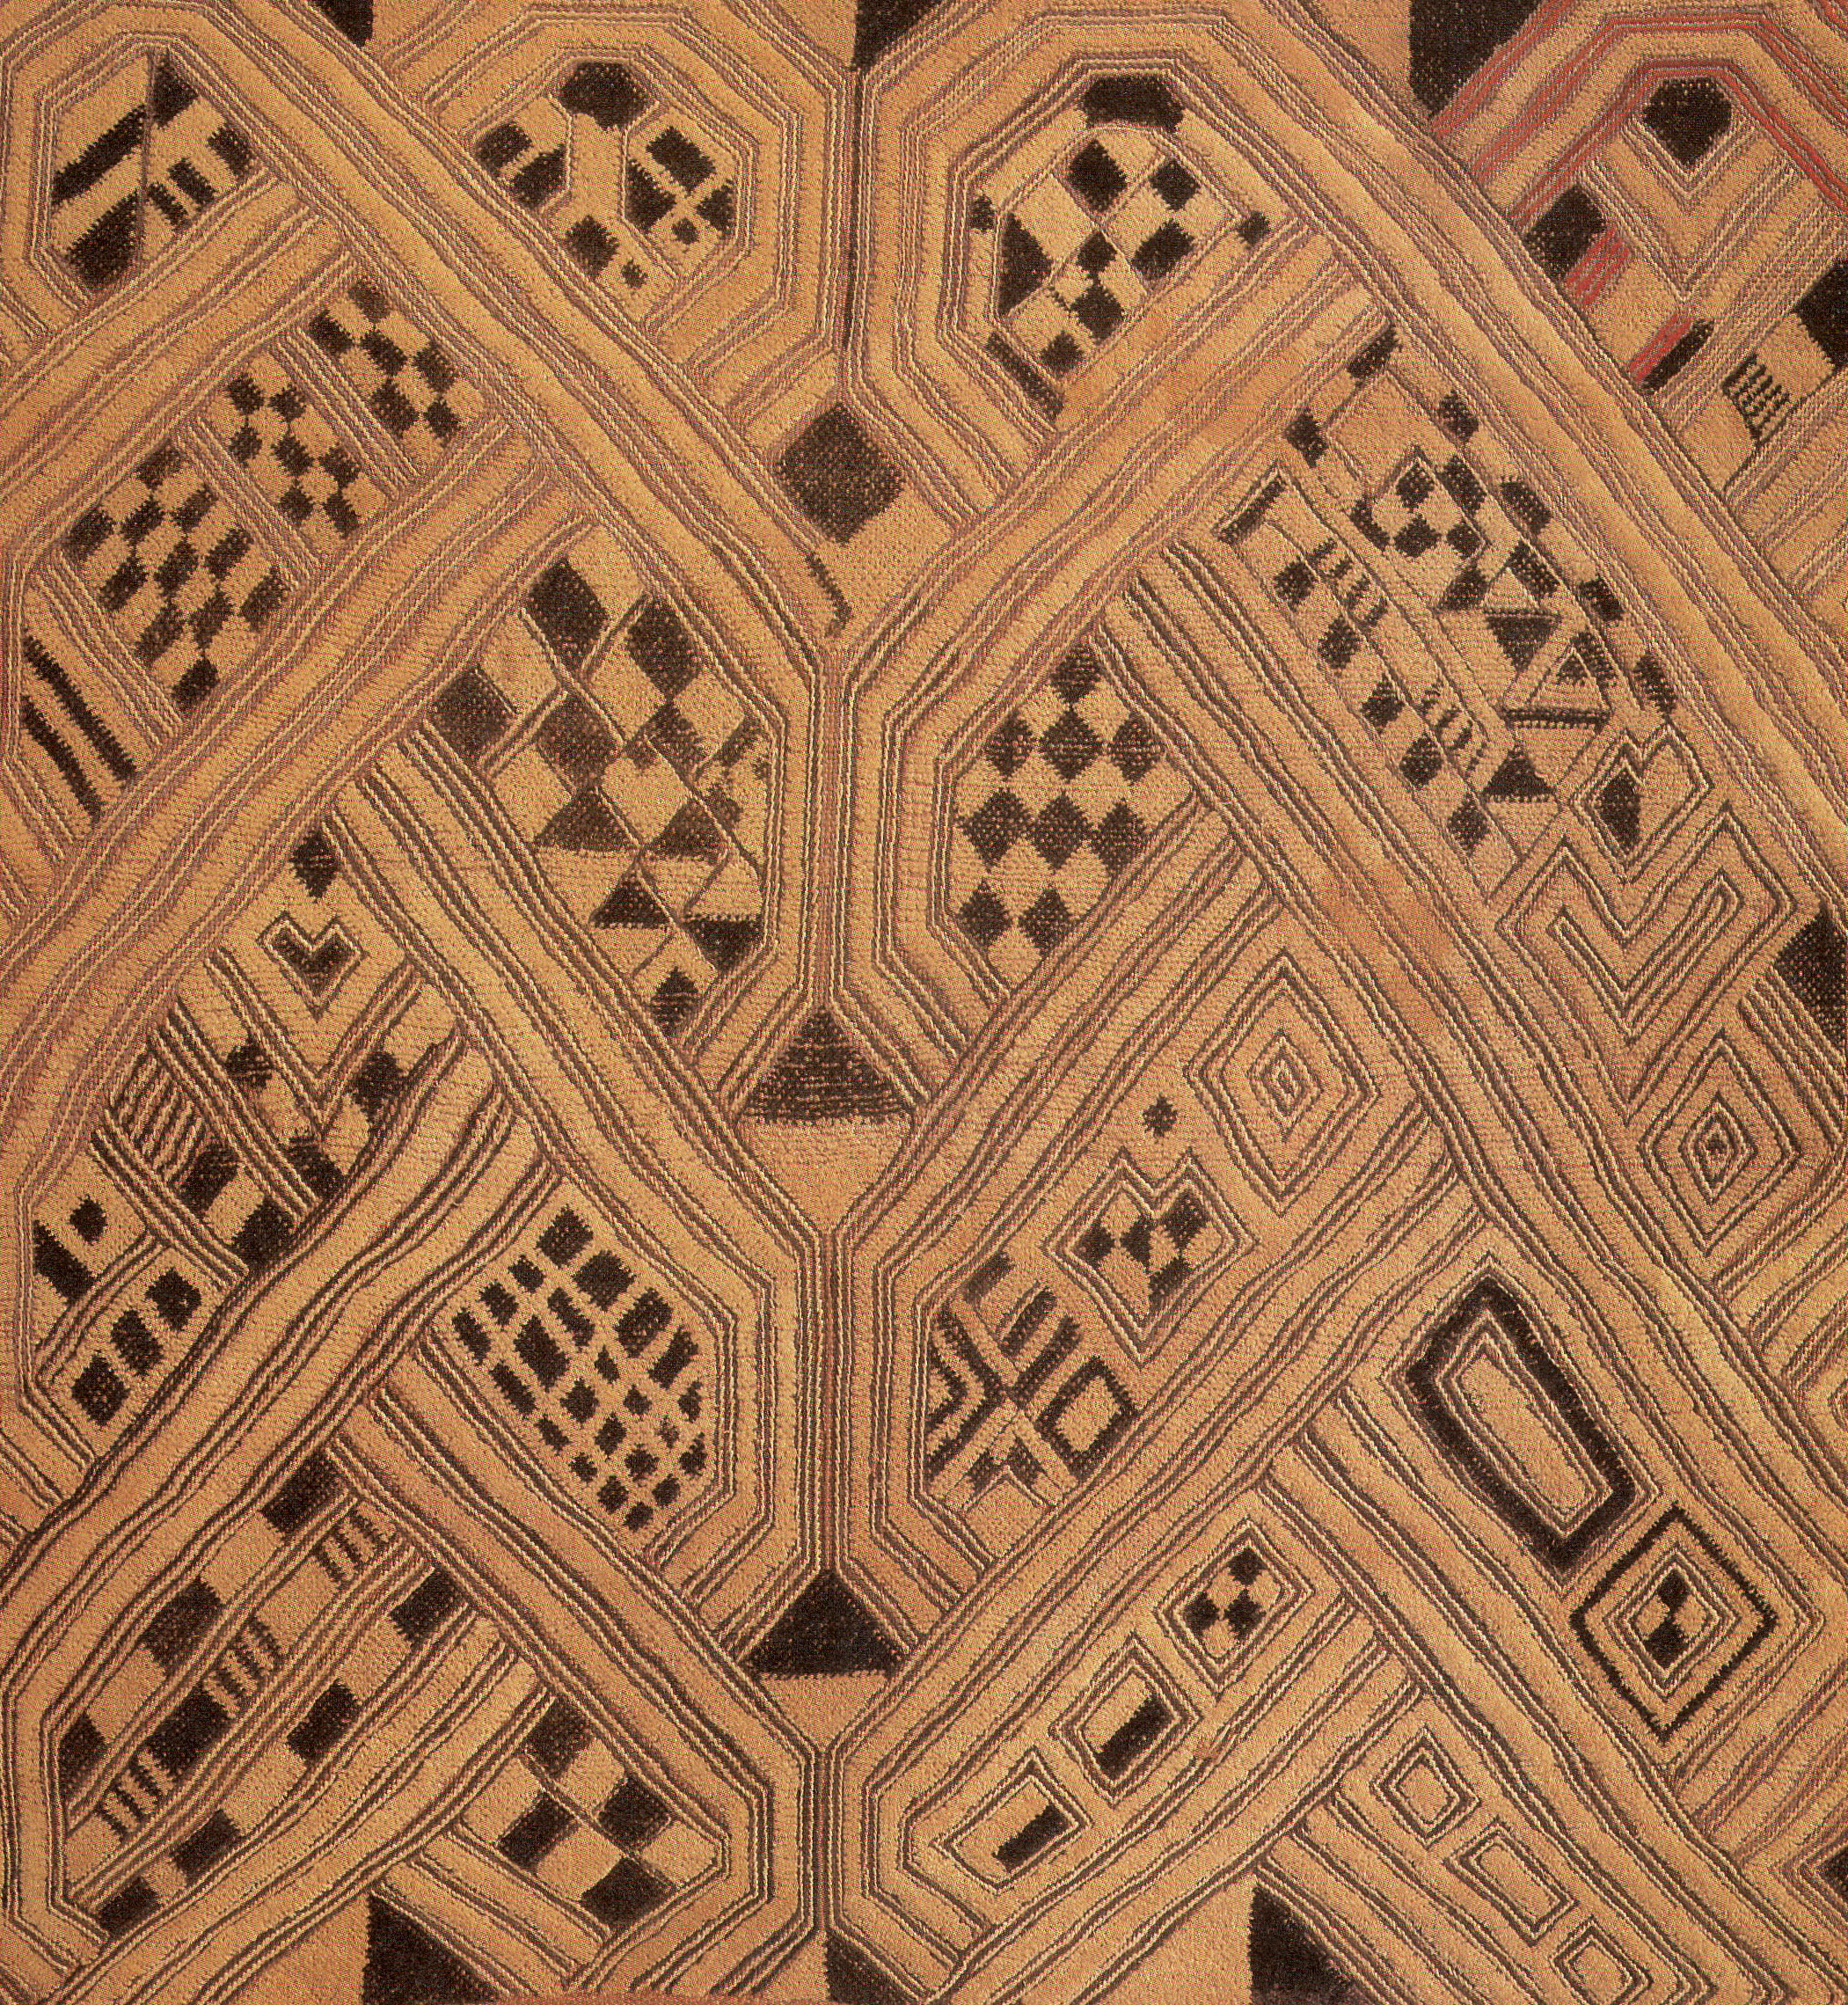 Adire african textiles gallery African Textiles - Hamill Gallery of Tribal Art